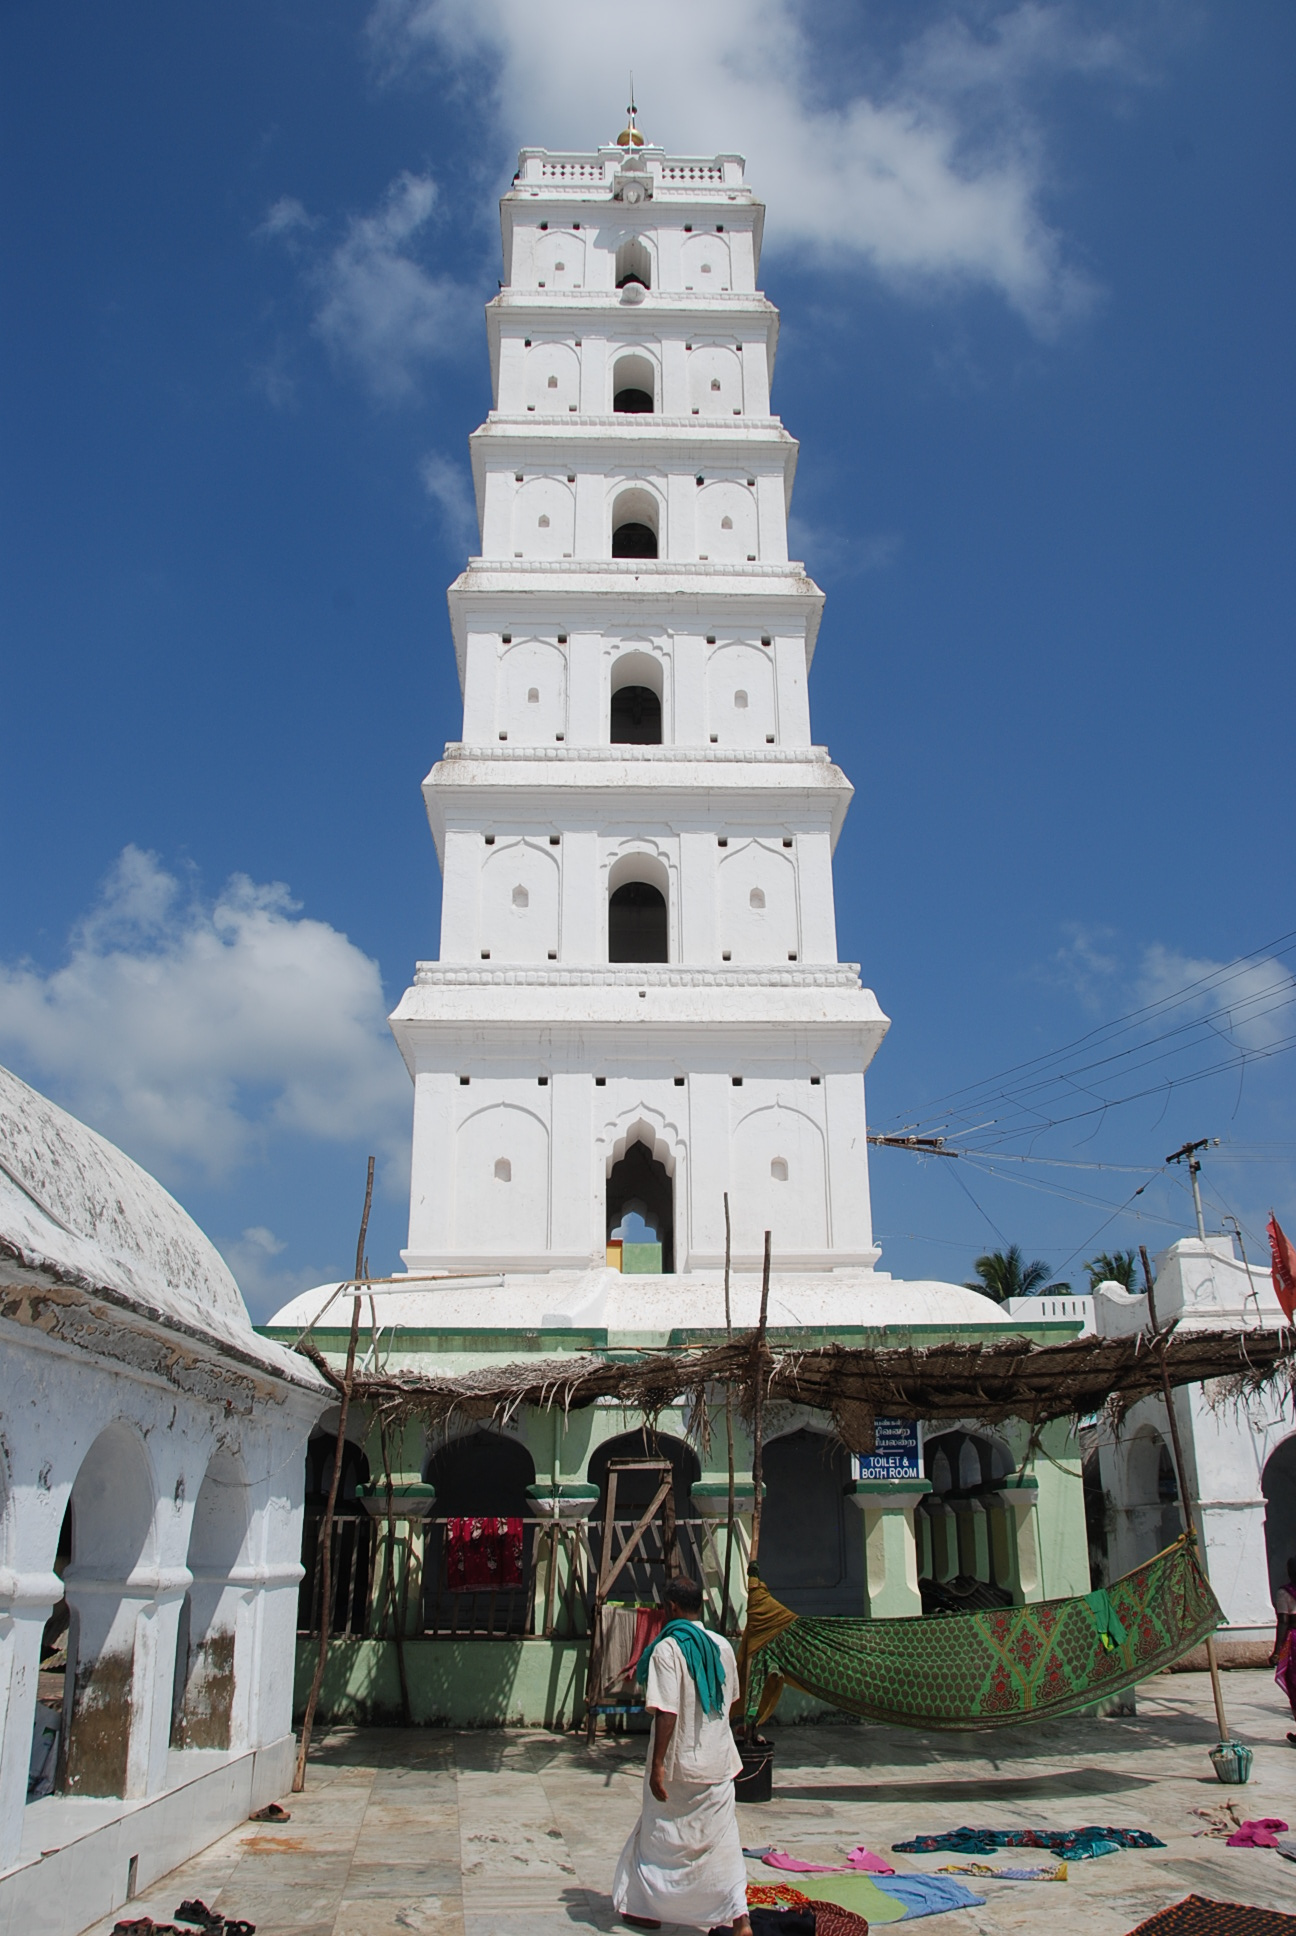 one of the four towers of the Nagore Dargah